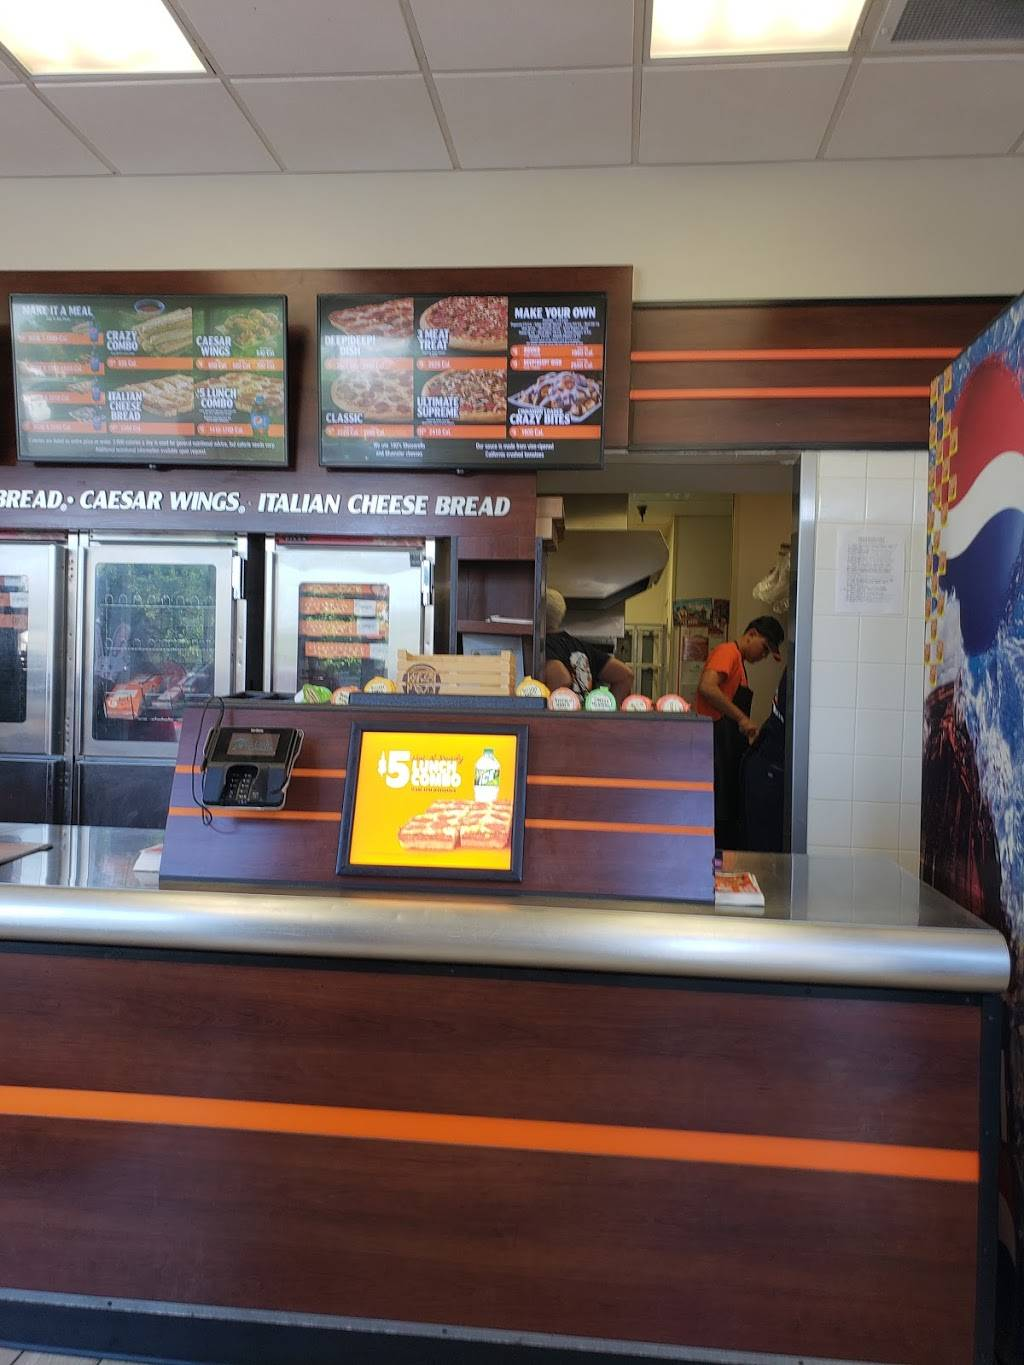 Little Caesars Pizza | meal takeaway | 885 N Lemoore Ave, Lemoore, CA 93245, USA | 5599247992 OR +1 559-924-7992